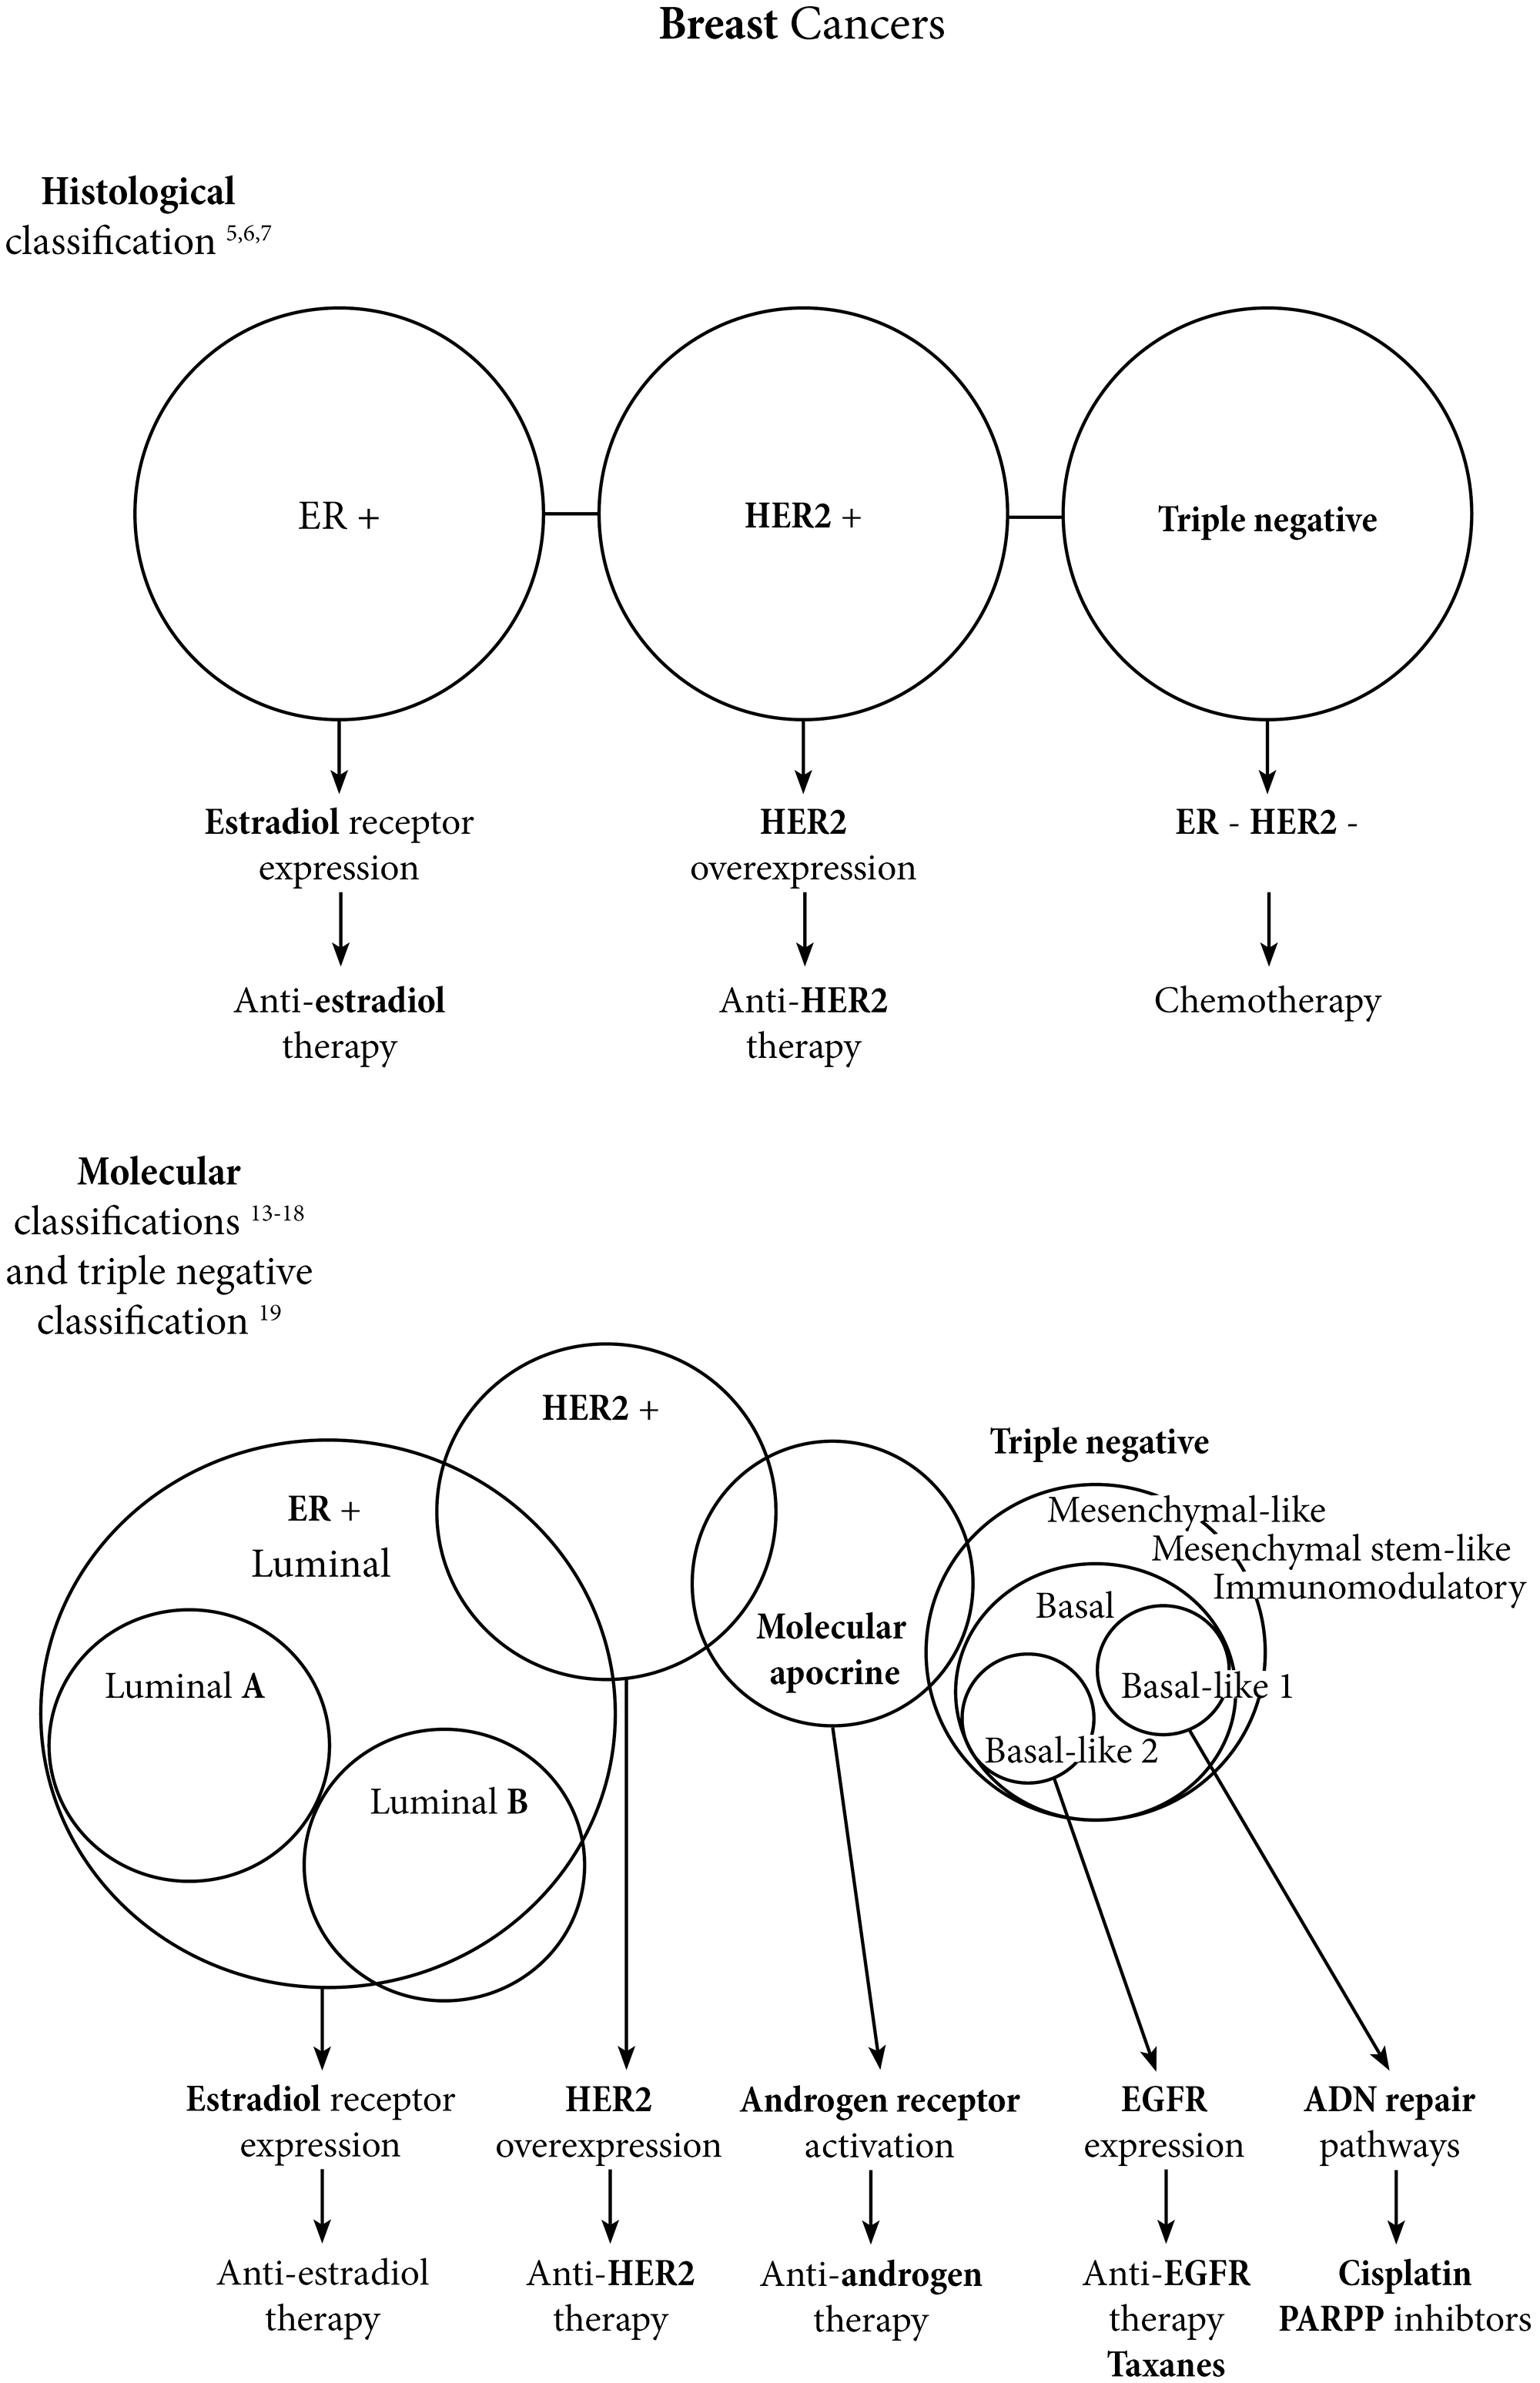 Breast cancers landscape evolution from histologic to molecular classifications.